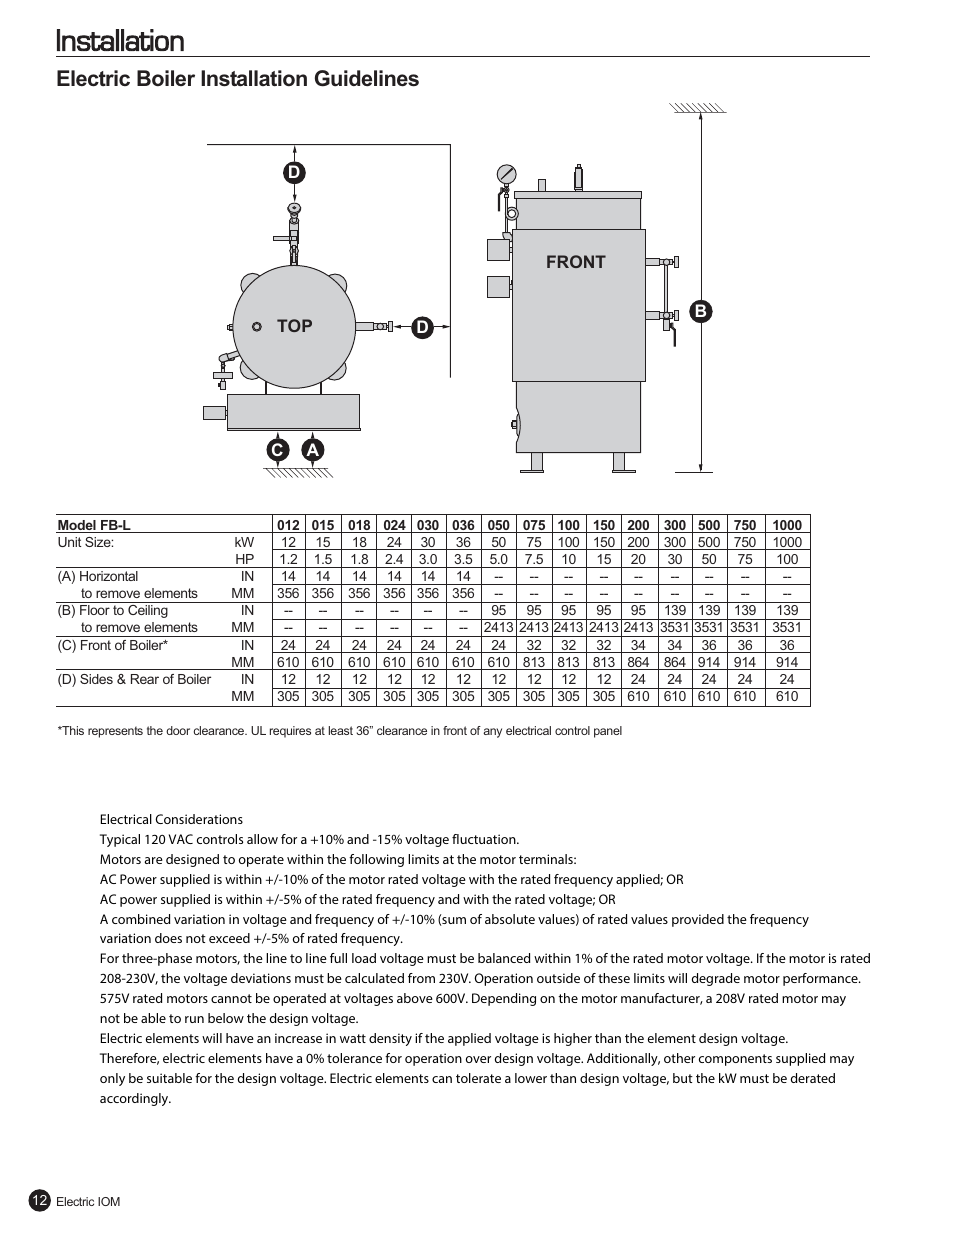 Electric Boiler Installation Manual Worksheet And Wiring Diagram Amptec Guidelines Fulton Rh Manualsdir Com Duct Hydronic